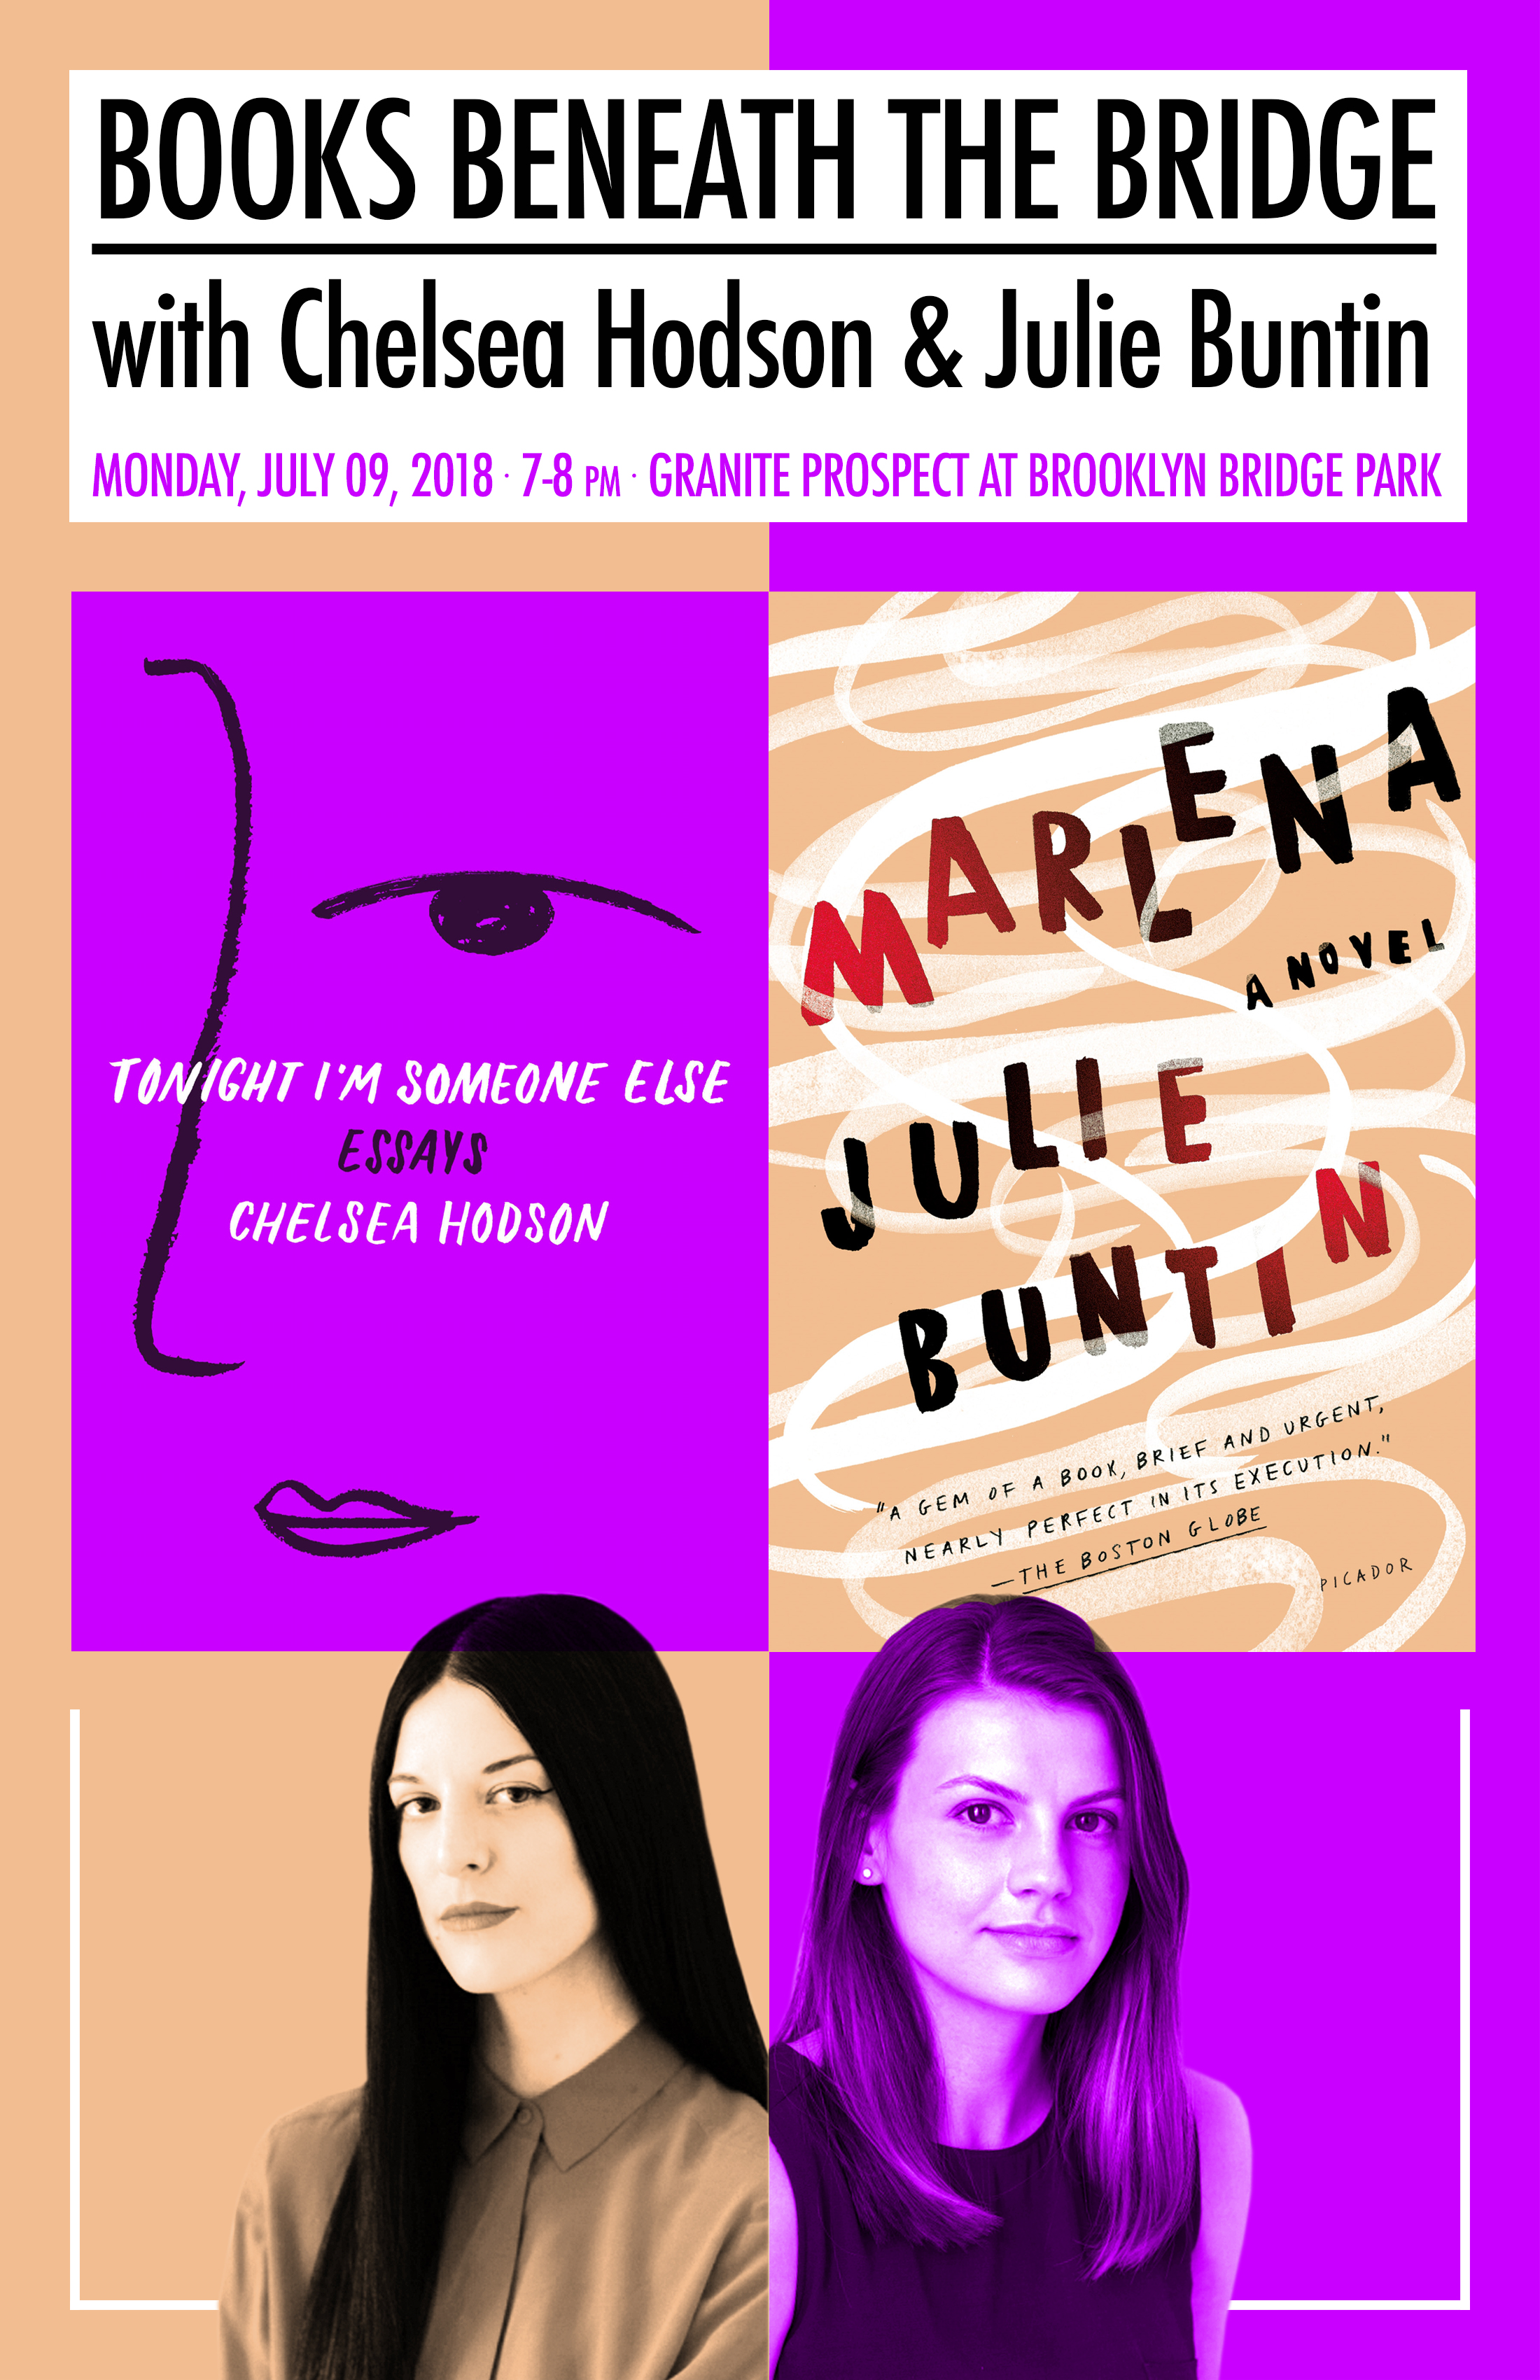 Books Beneath the Bridge with Chelsea Hodson & Julie Buntin